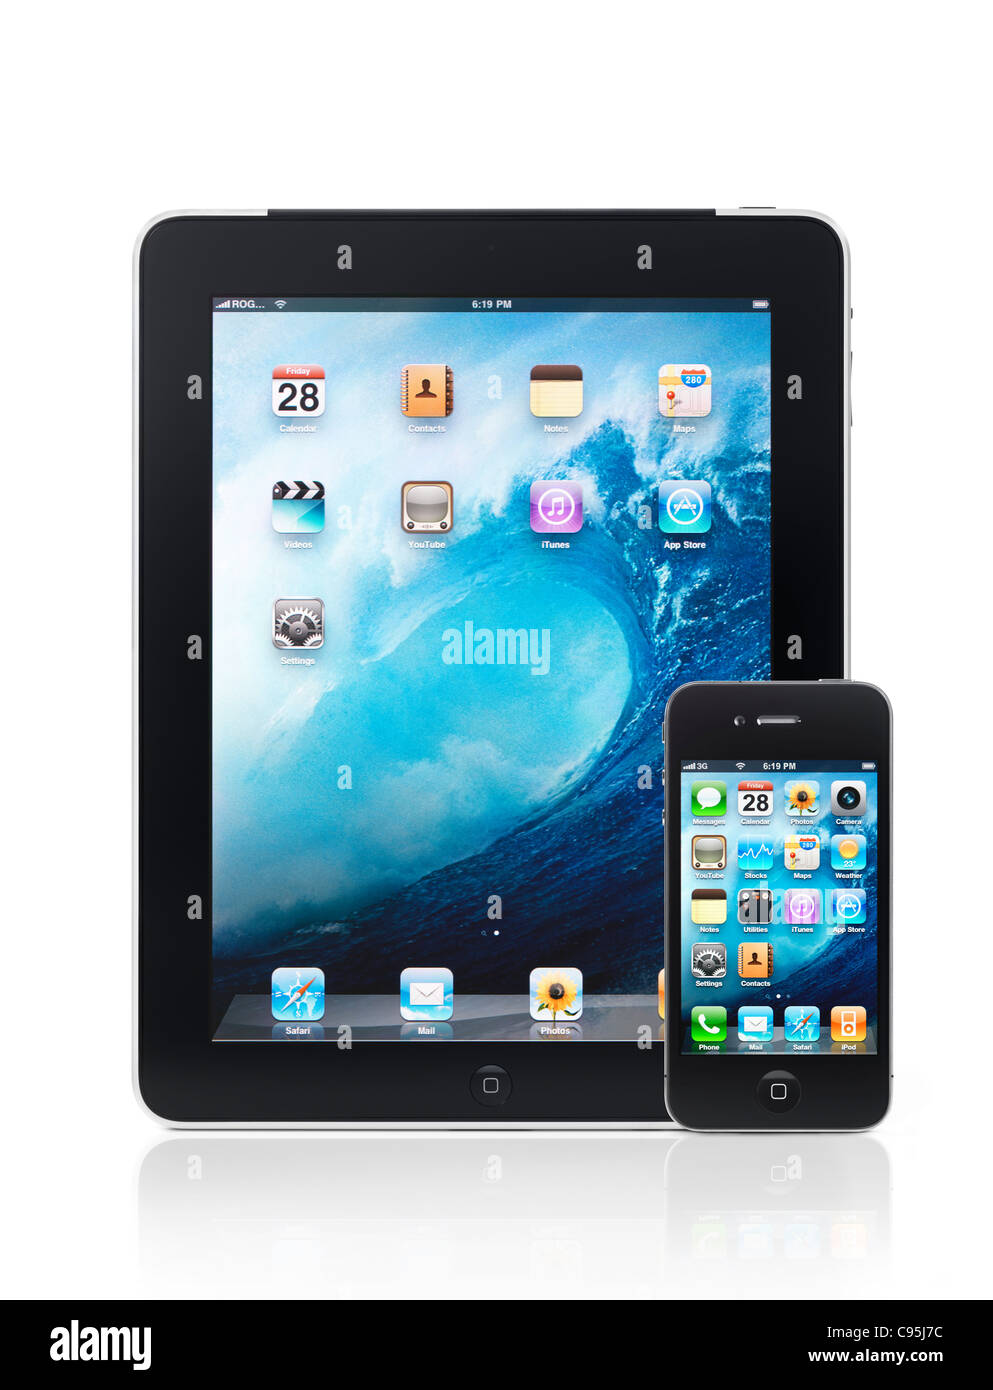 Apple iPad 3G tablet computer and iPhone 4 smartphone with desktop icons on their displays isolated on white background - Stock Image